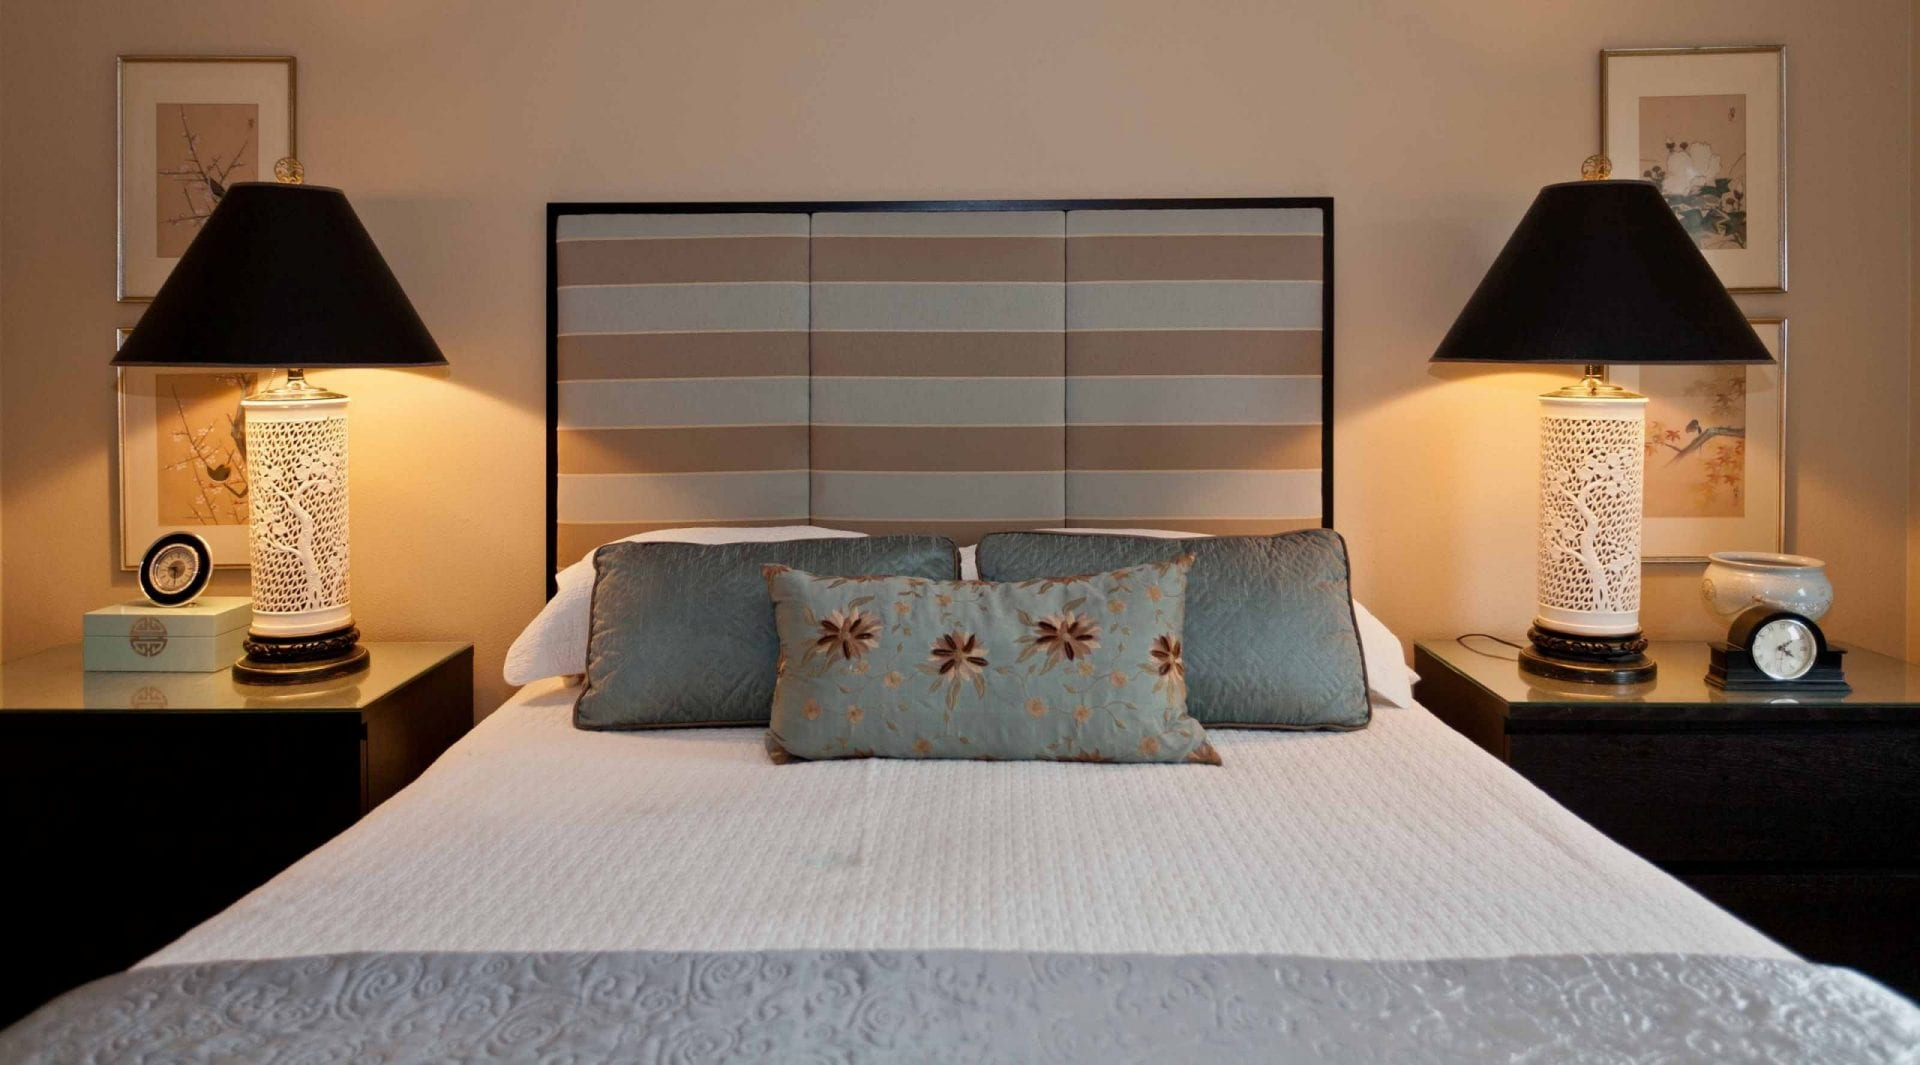 Custom Upholstered Headboard and vintage lamps